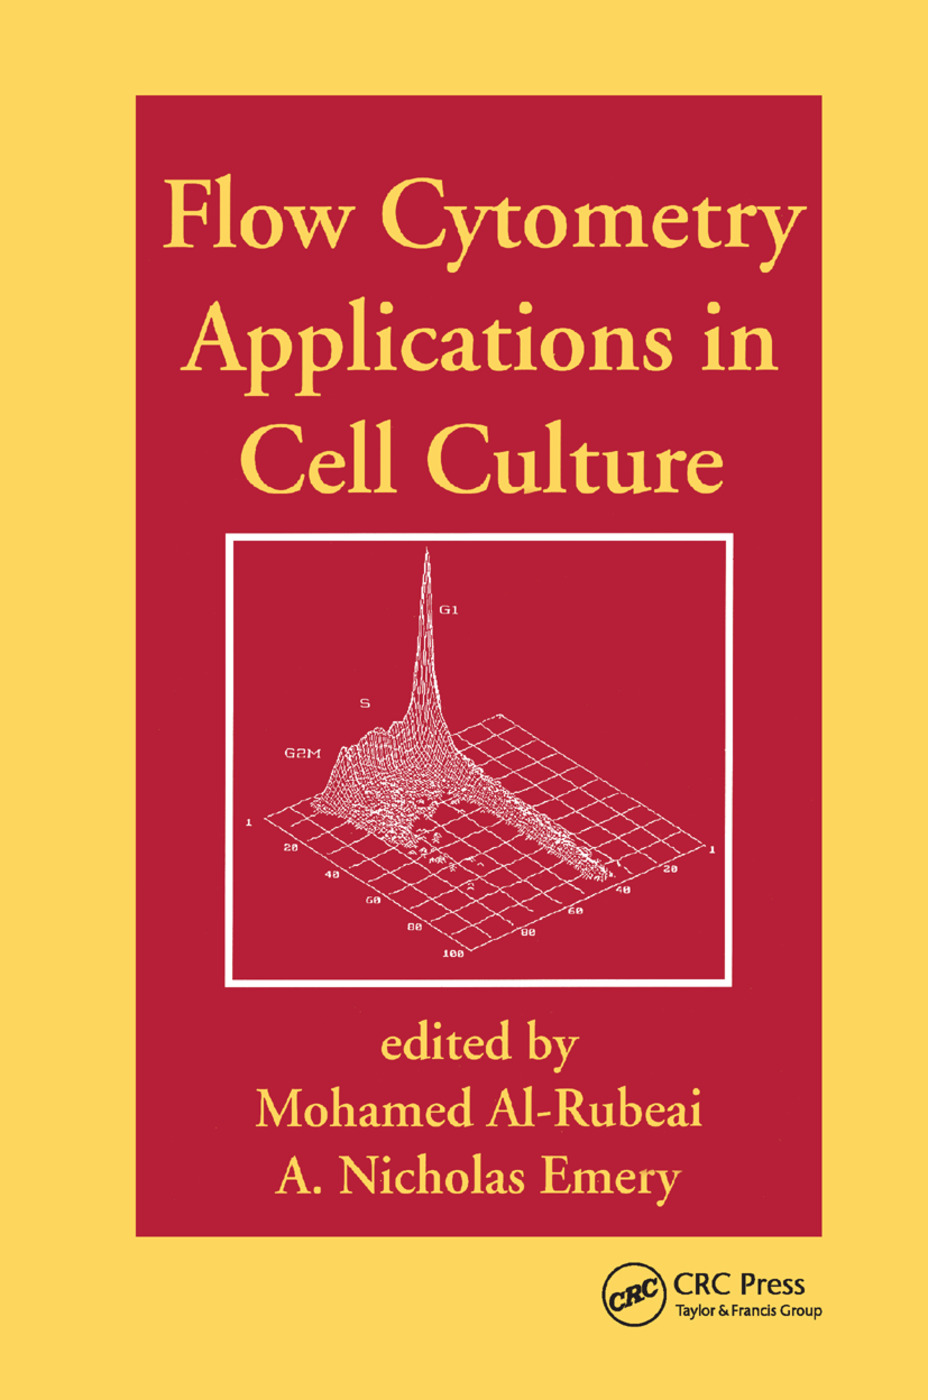 Flow Cytometry Applications in Cell Culture: 1st Edition (Paperback) book cover